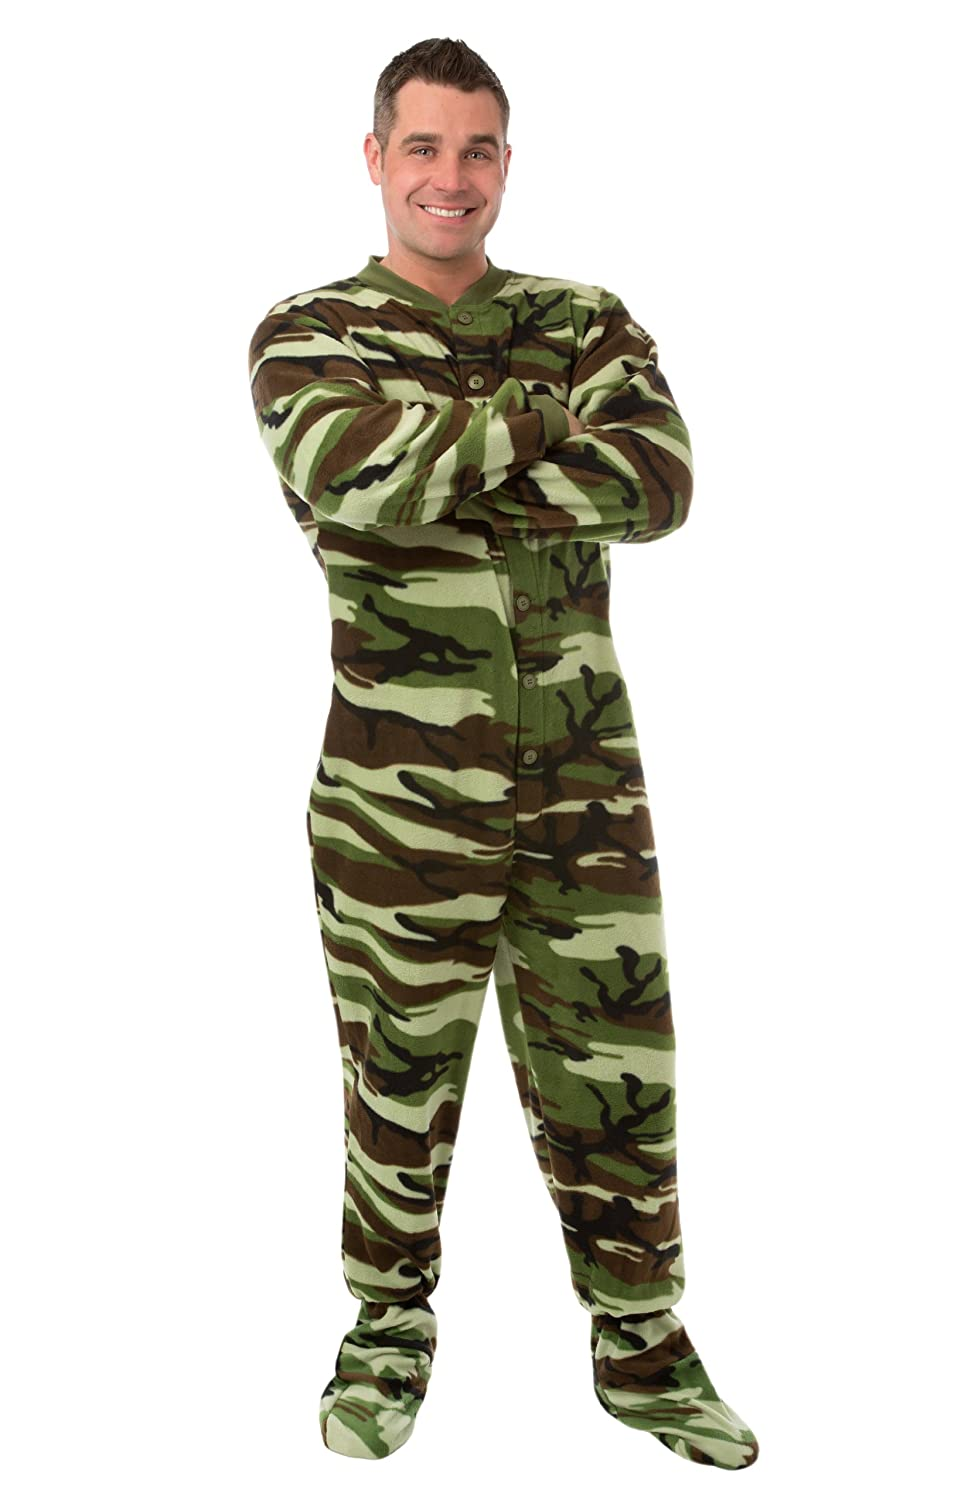 d4e27d70d6 Big Feet Pajama Camouflage Micro Polar Fleece Adult Footed Pajamas Onesie  with Drop Seat at Amazon Men s Clothing store